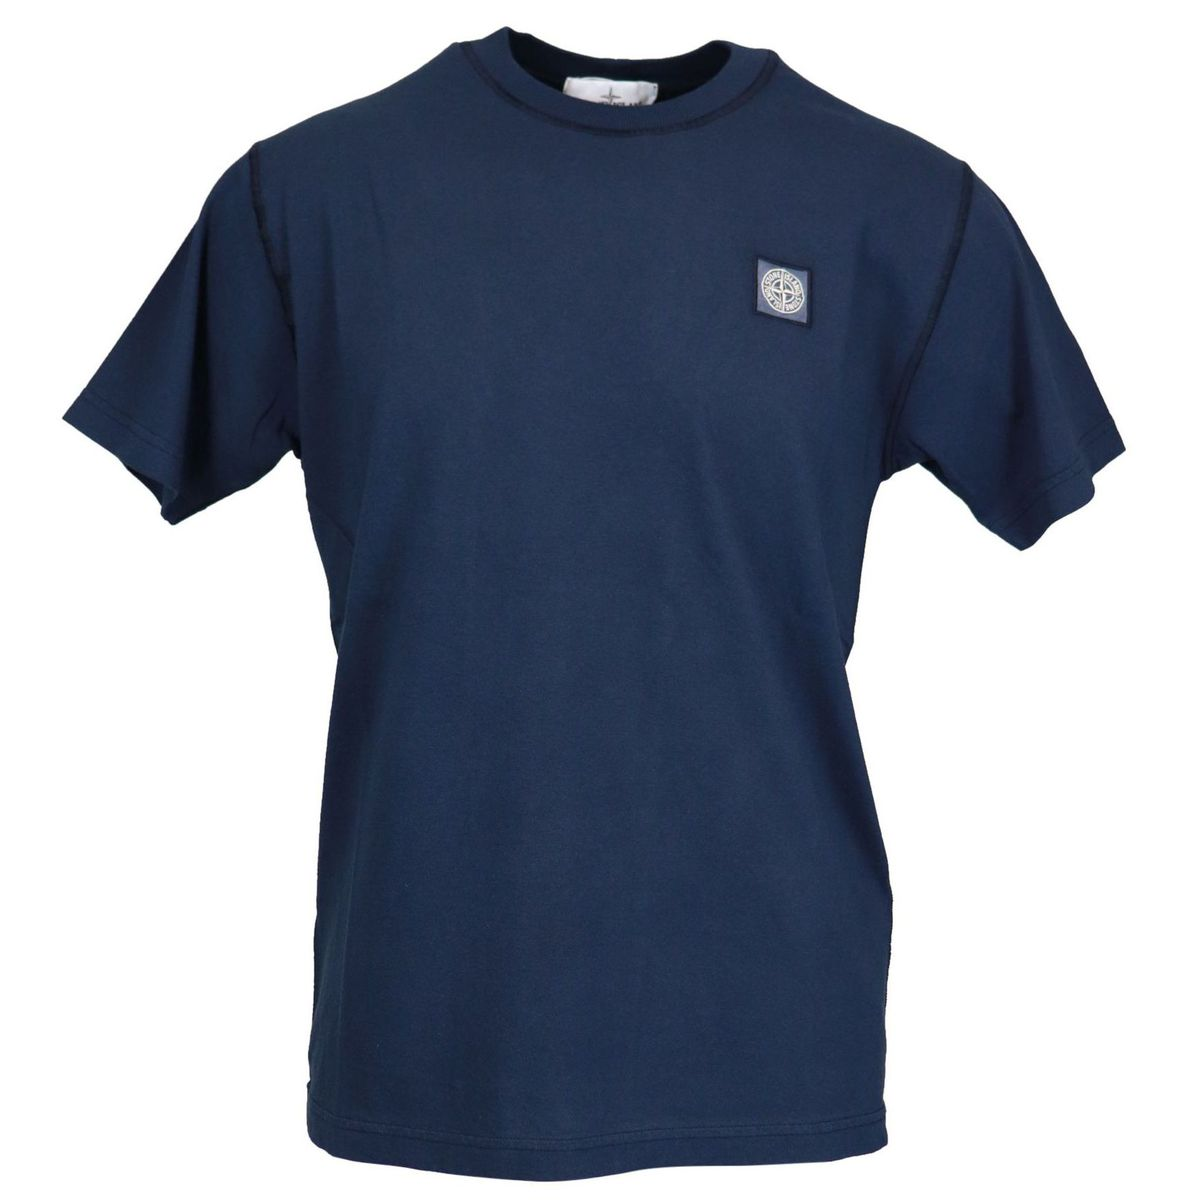 Cotton t-shirt with logo patch on the chest Navy Stone Island